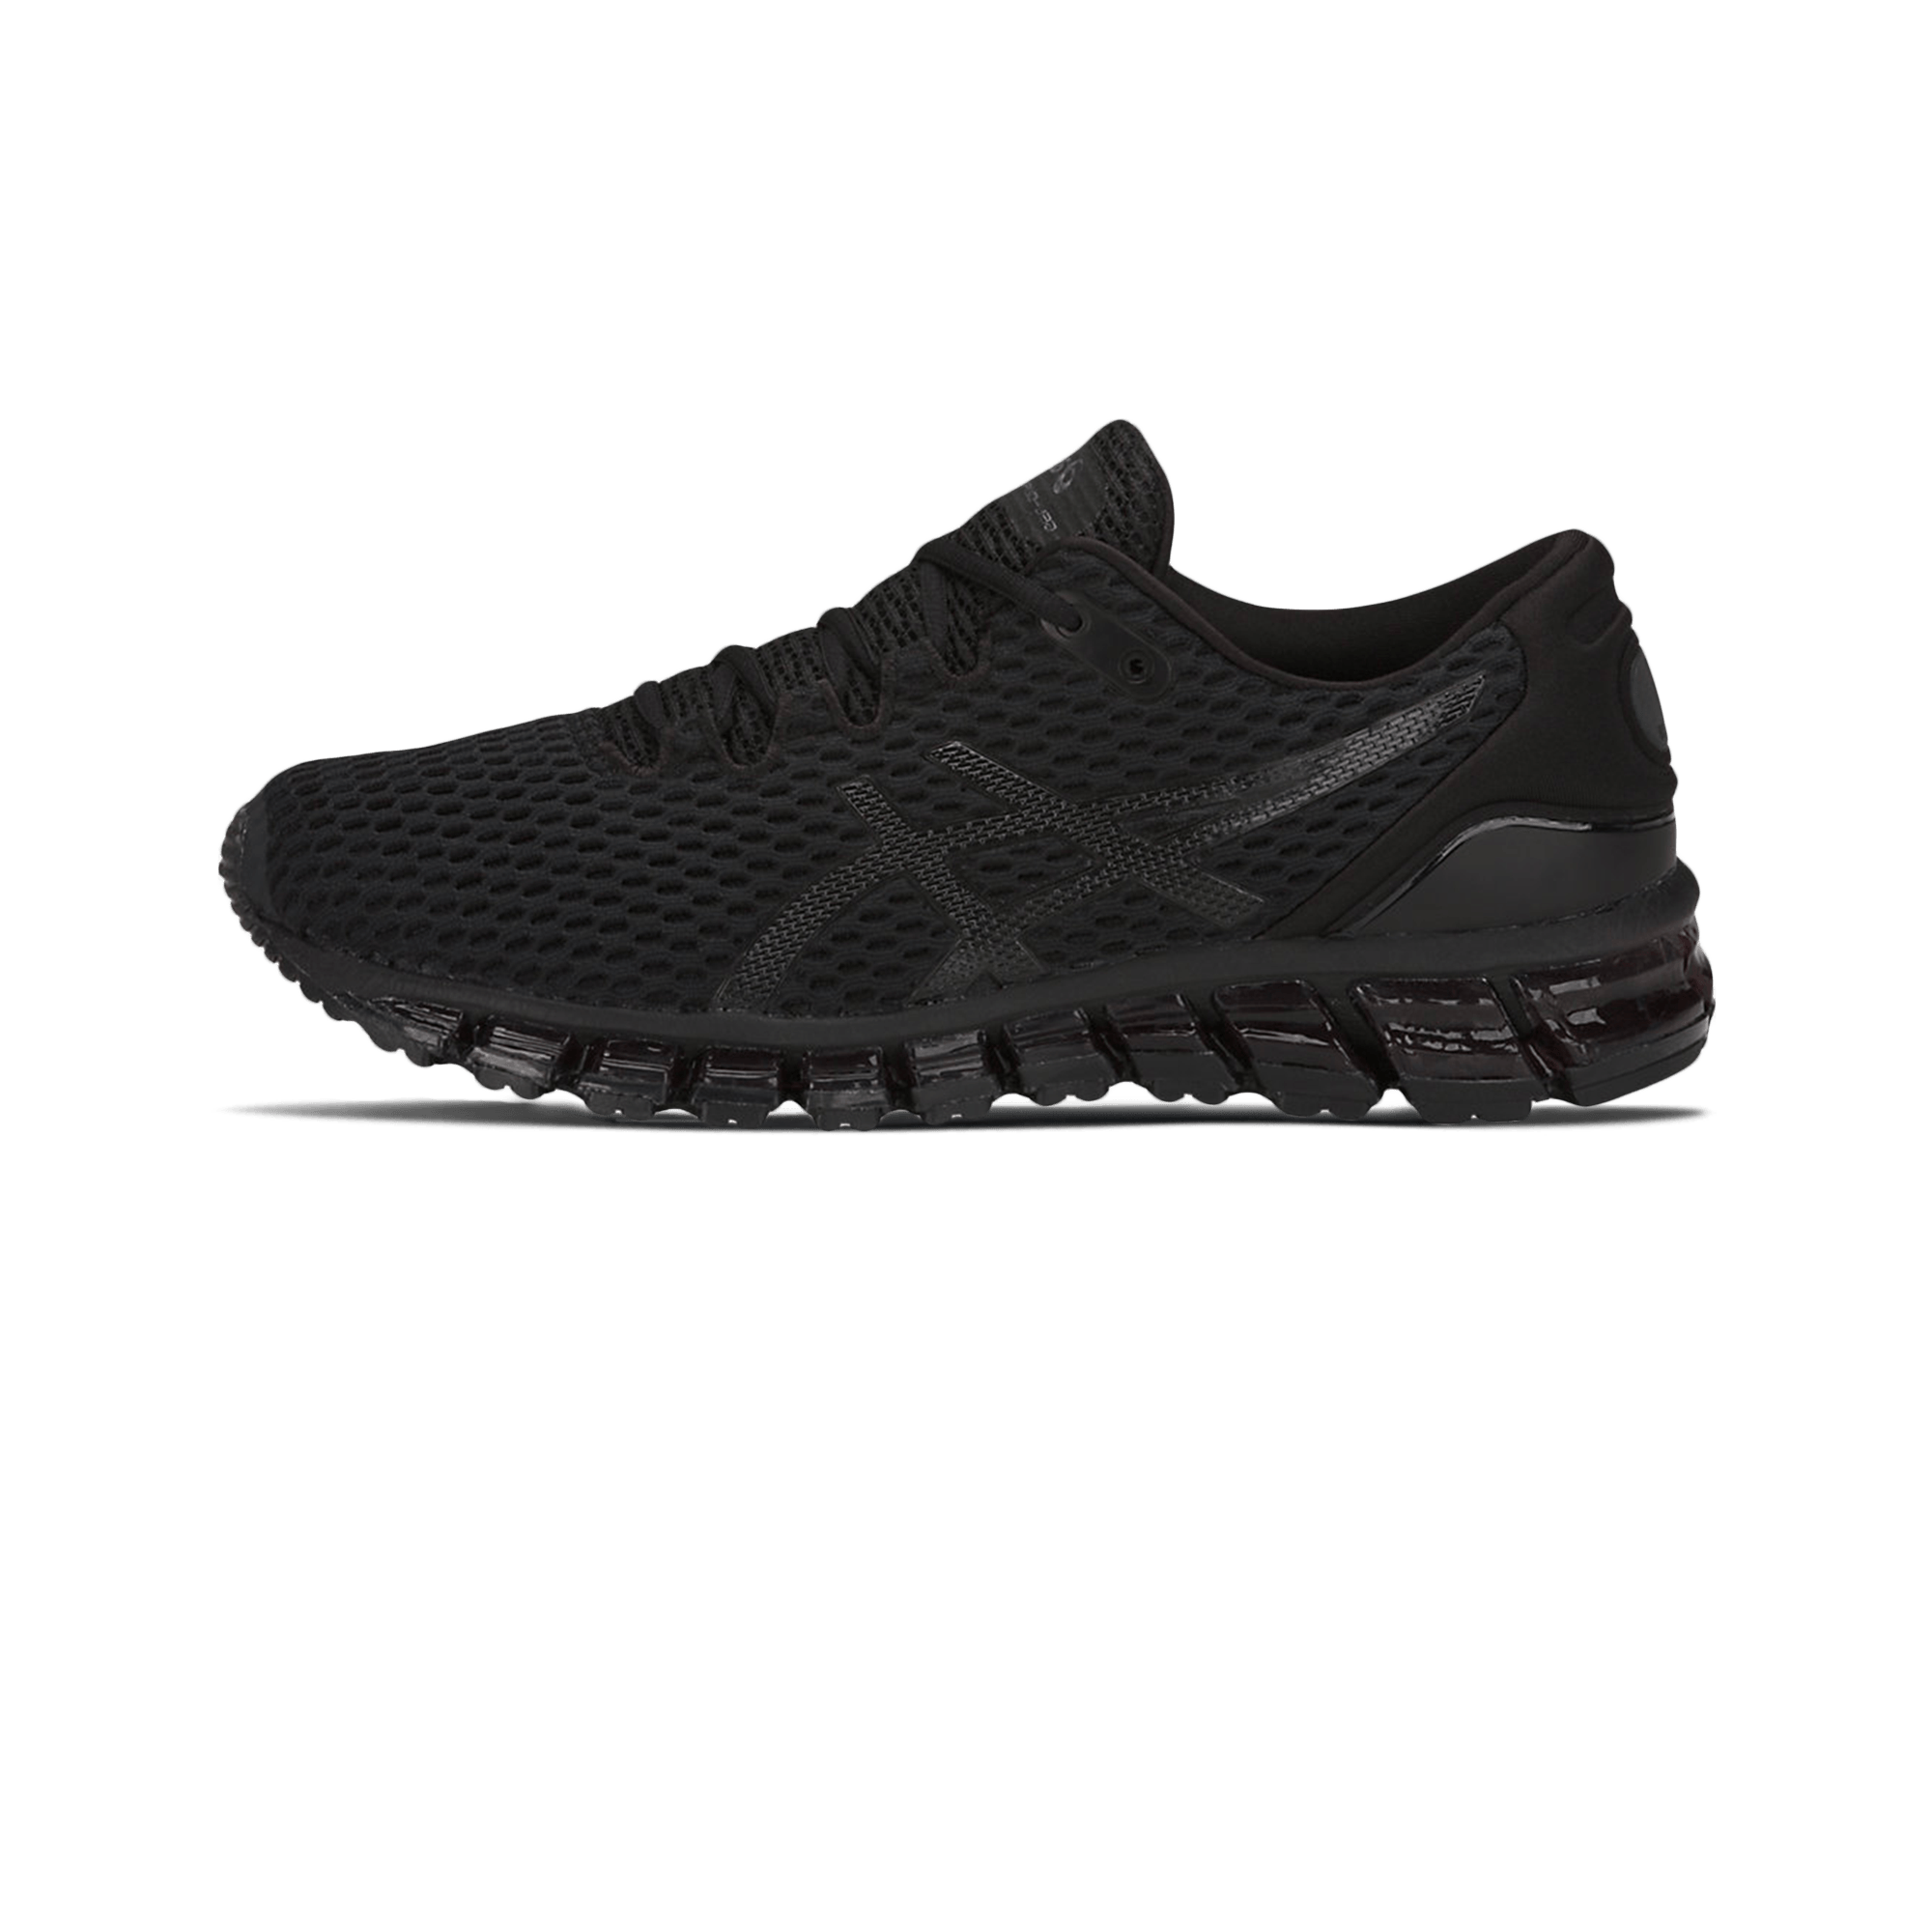 quality design 472a4 f7d8a Asics Gel-Quantum 360 Shift MX black/black - Men | Holypopstore.com